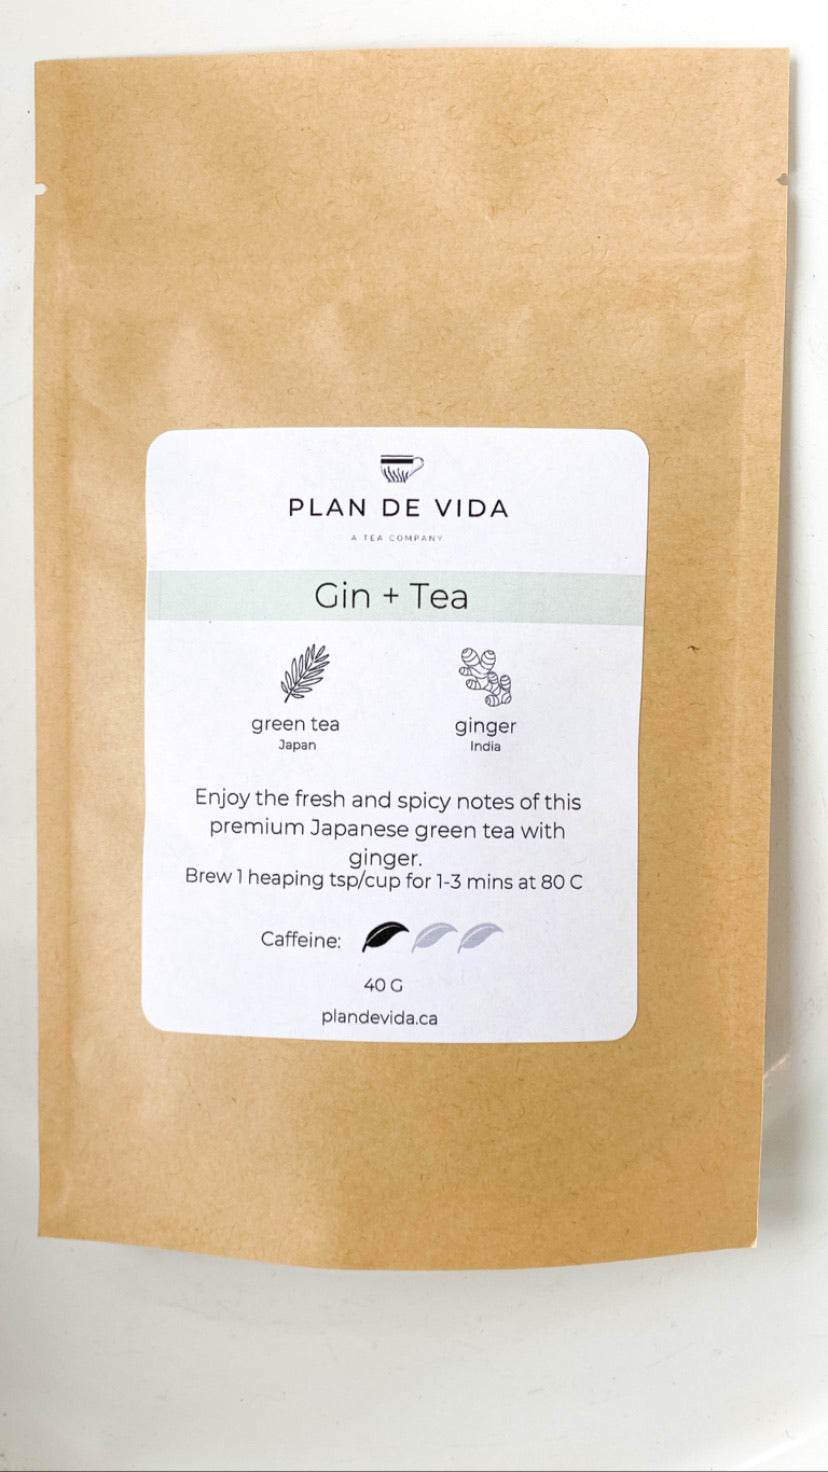 Gin + Tea Loose Leaf Tea